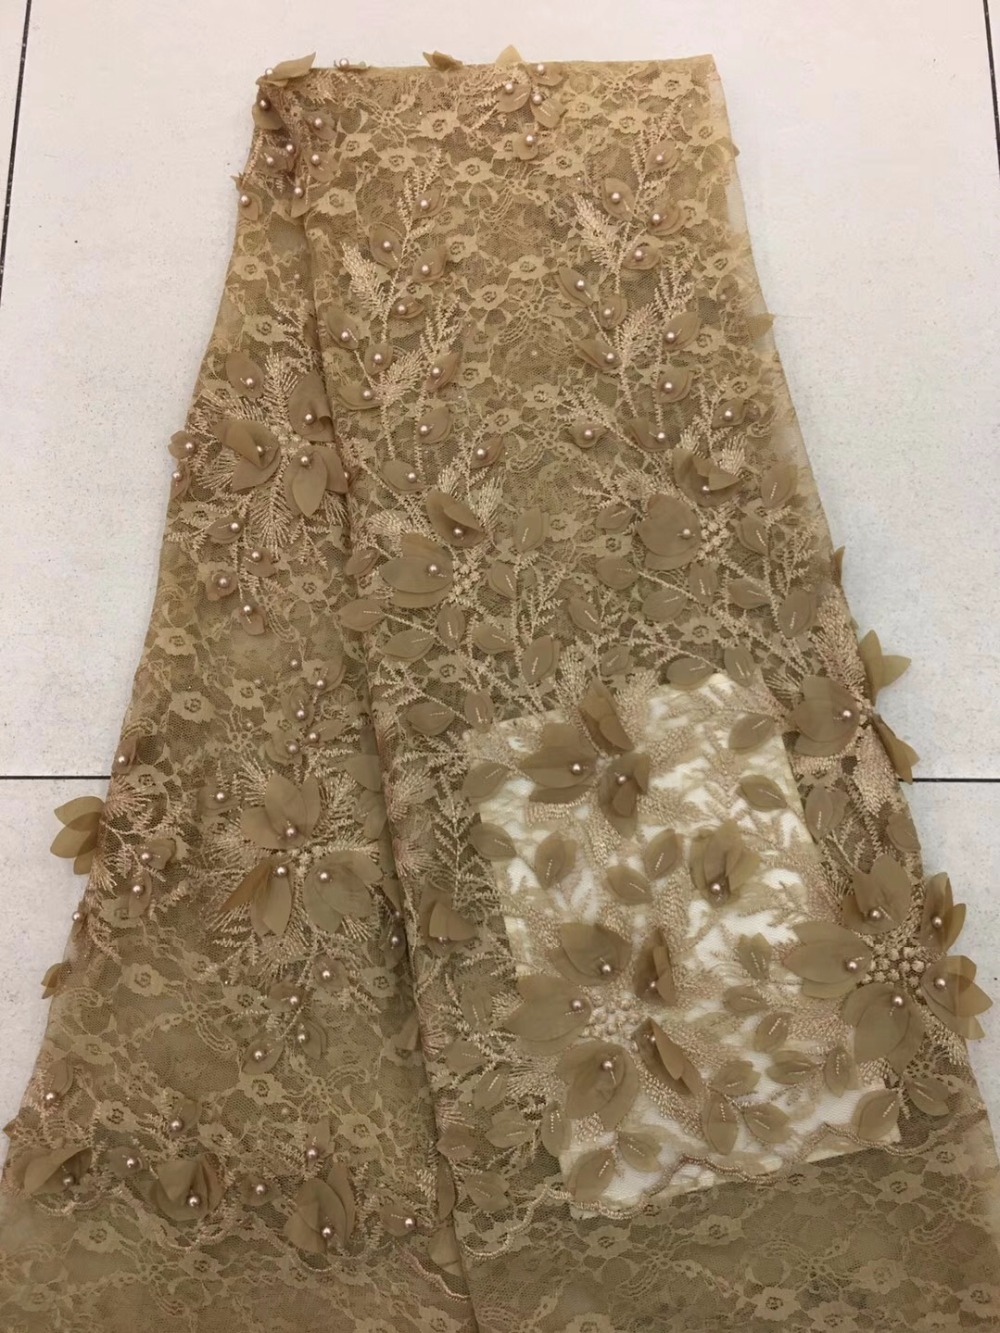 Pearls African Lace Fabric, Chiffon Tulle Lace Fabric, Latest Wedding Dresses Nigeria Lace 2018Pearls African Lace Fabric, Chiffon Tulle Lace Fabric, Latest Wedding Dresses Nigeria Lace 2018